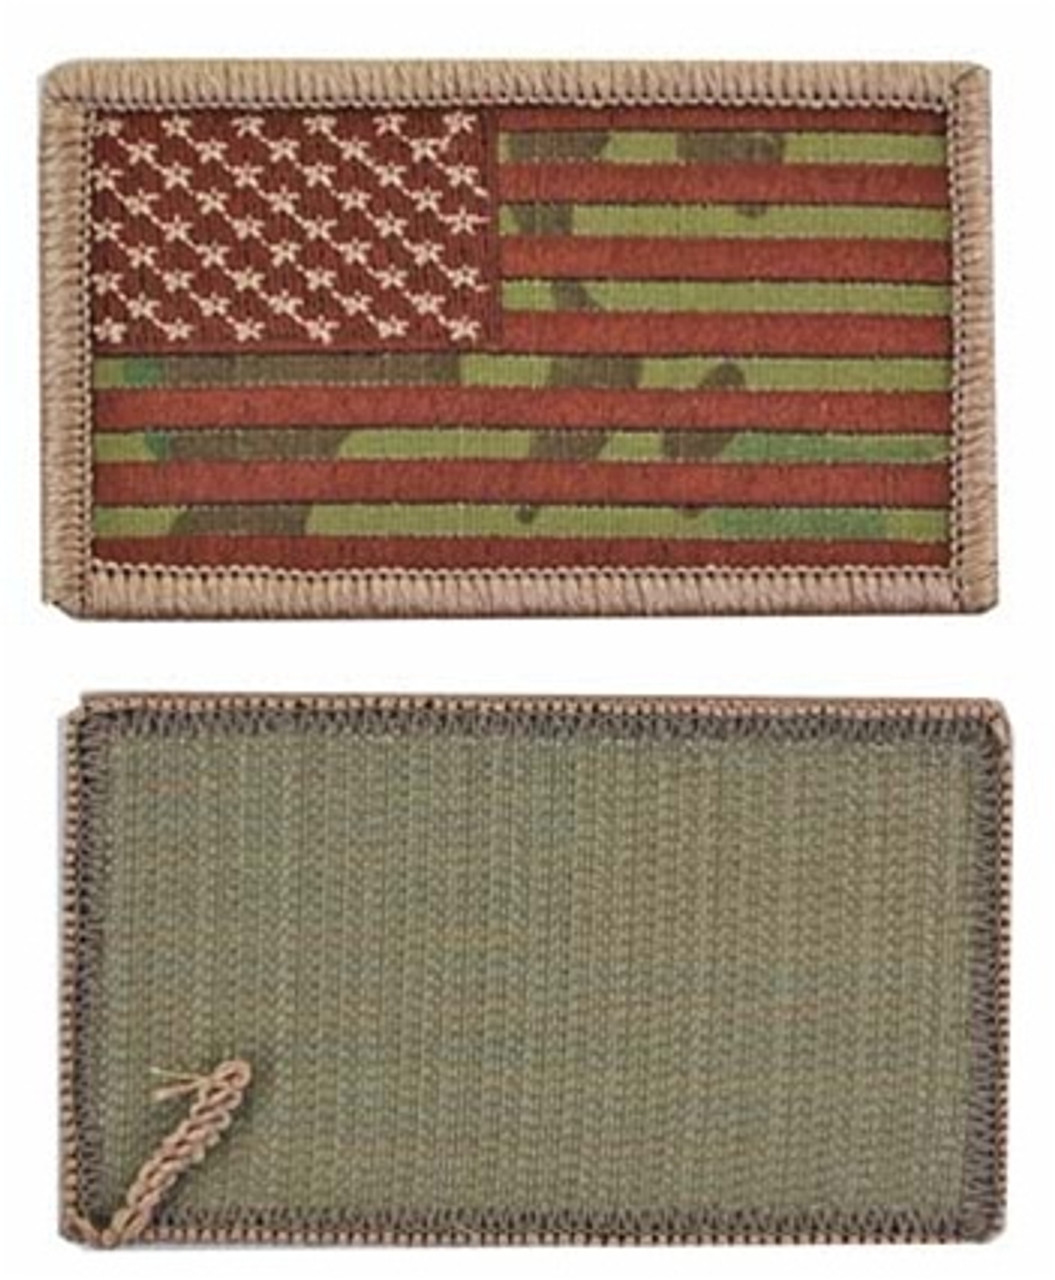 OCP U.S. Flag Patch with Hook Fasteners from Hessen Antique